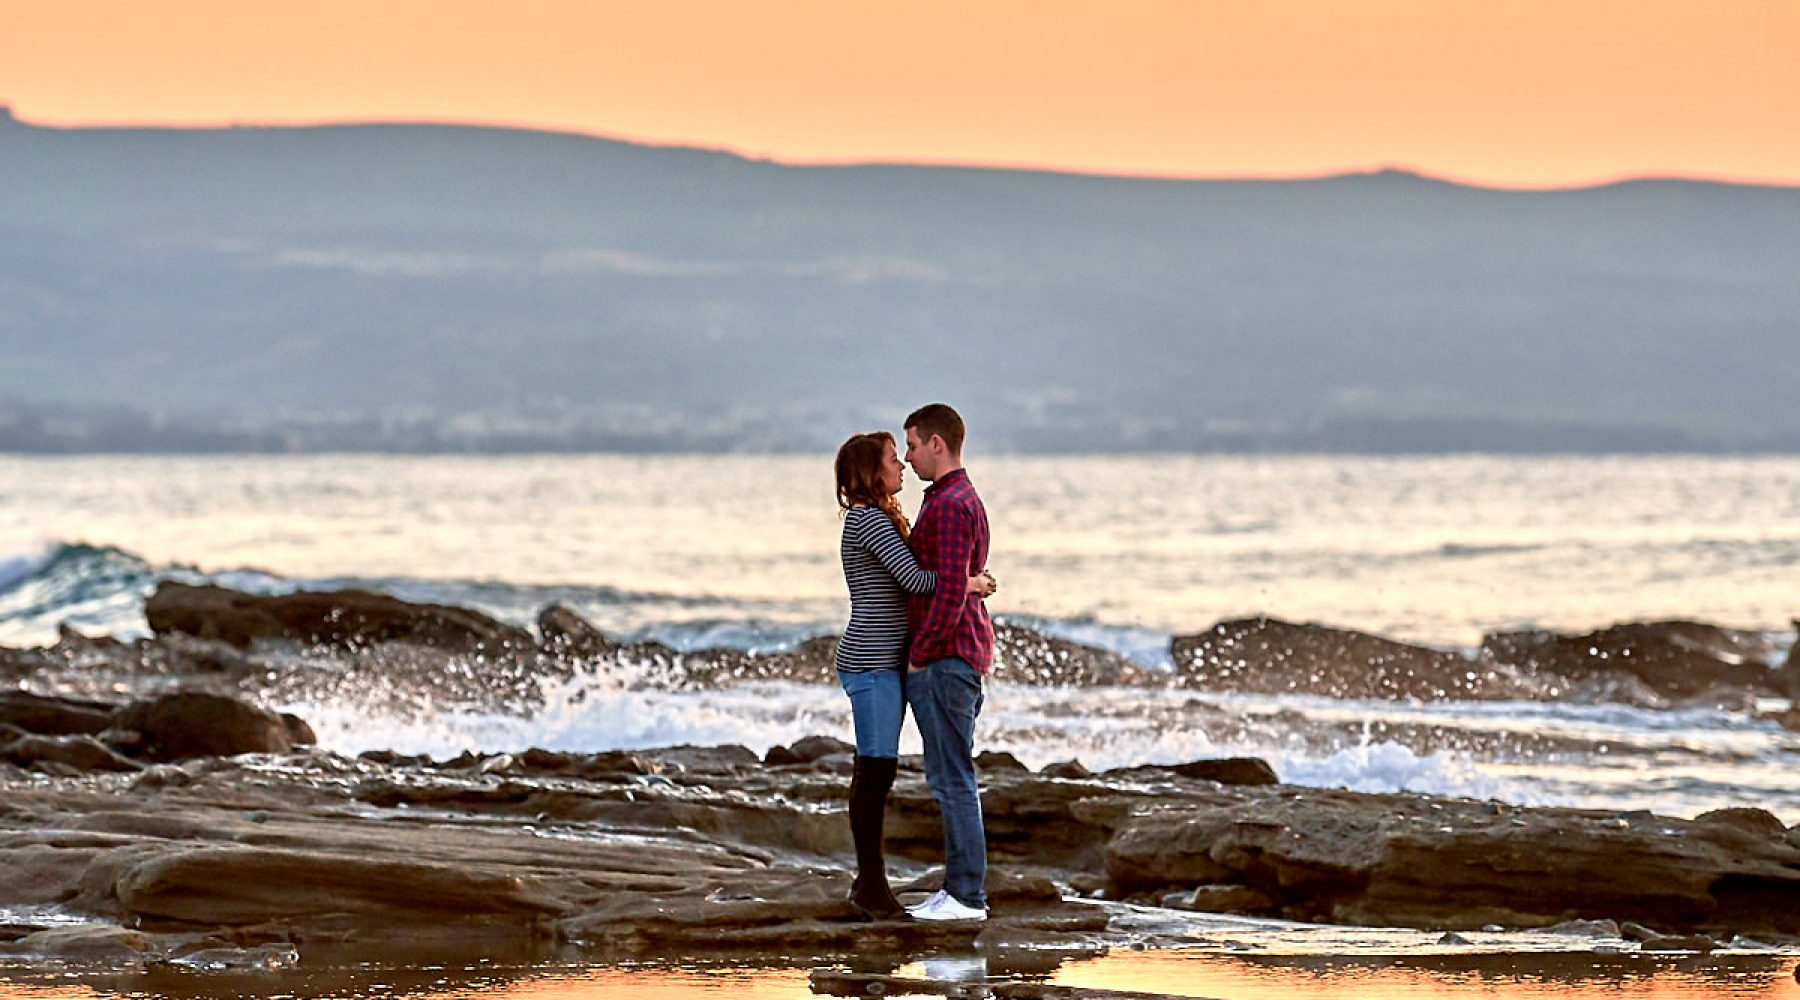 Sue and Max – Engagement shoot – Argaka Beach, Polis – Feb 2018